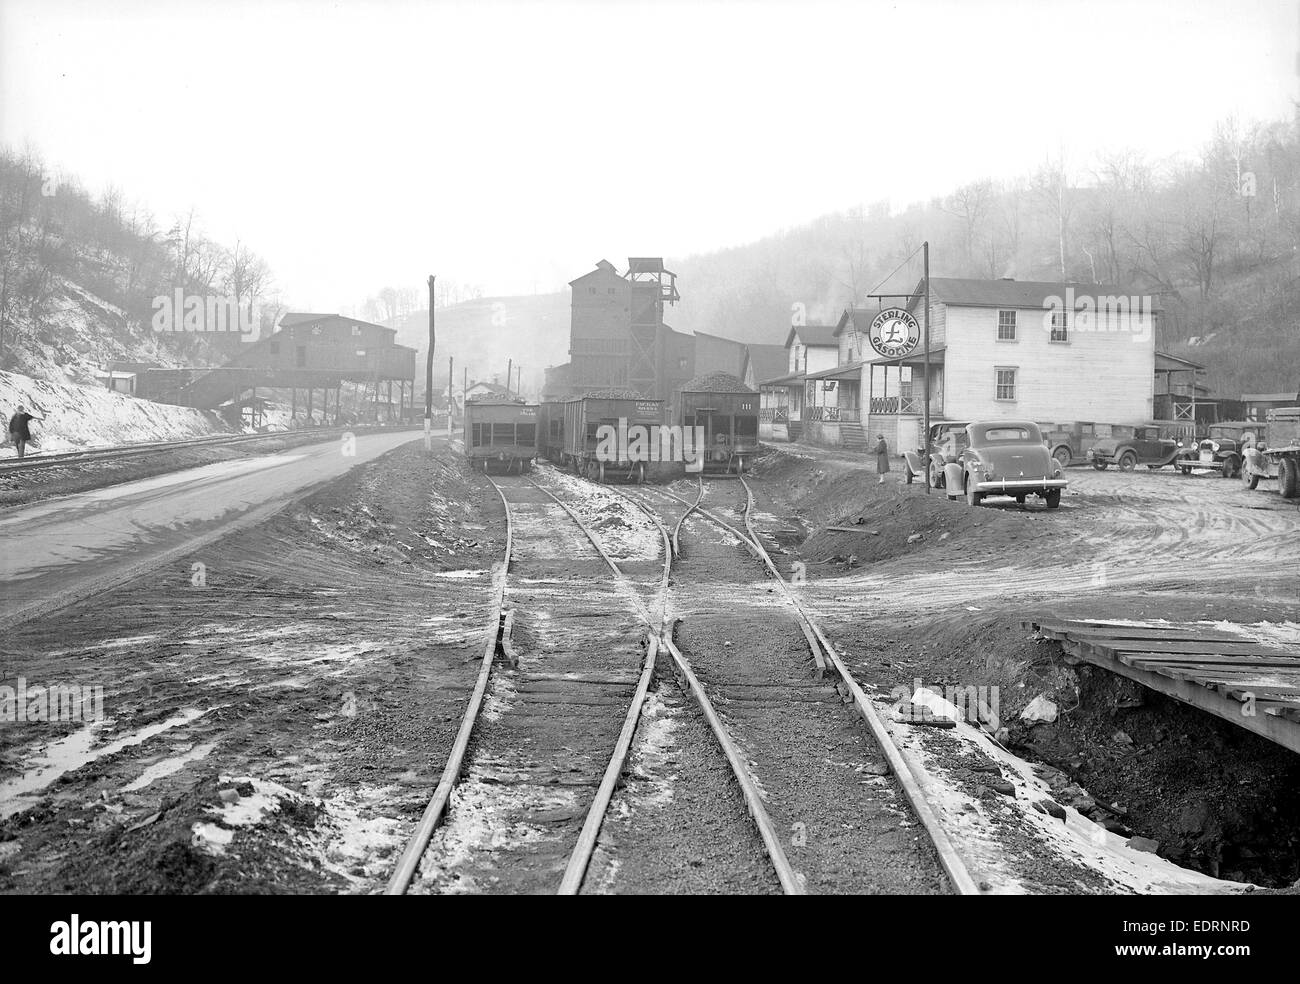 Scott's Run, West Virginia. Pursglove Nos. 3 and 4 - Another view of Pursglove Mines Nos. 3 and 4, March 1937, - Stock Image